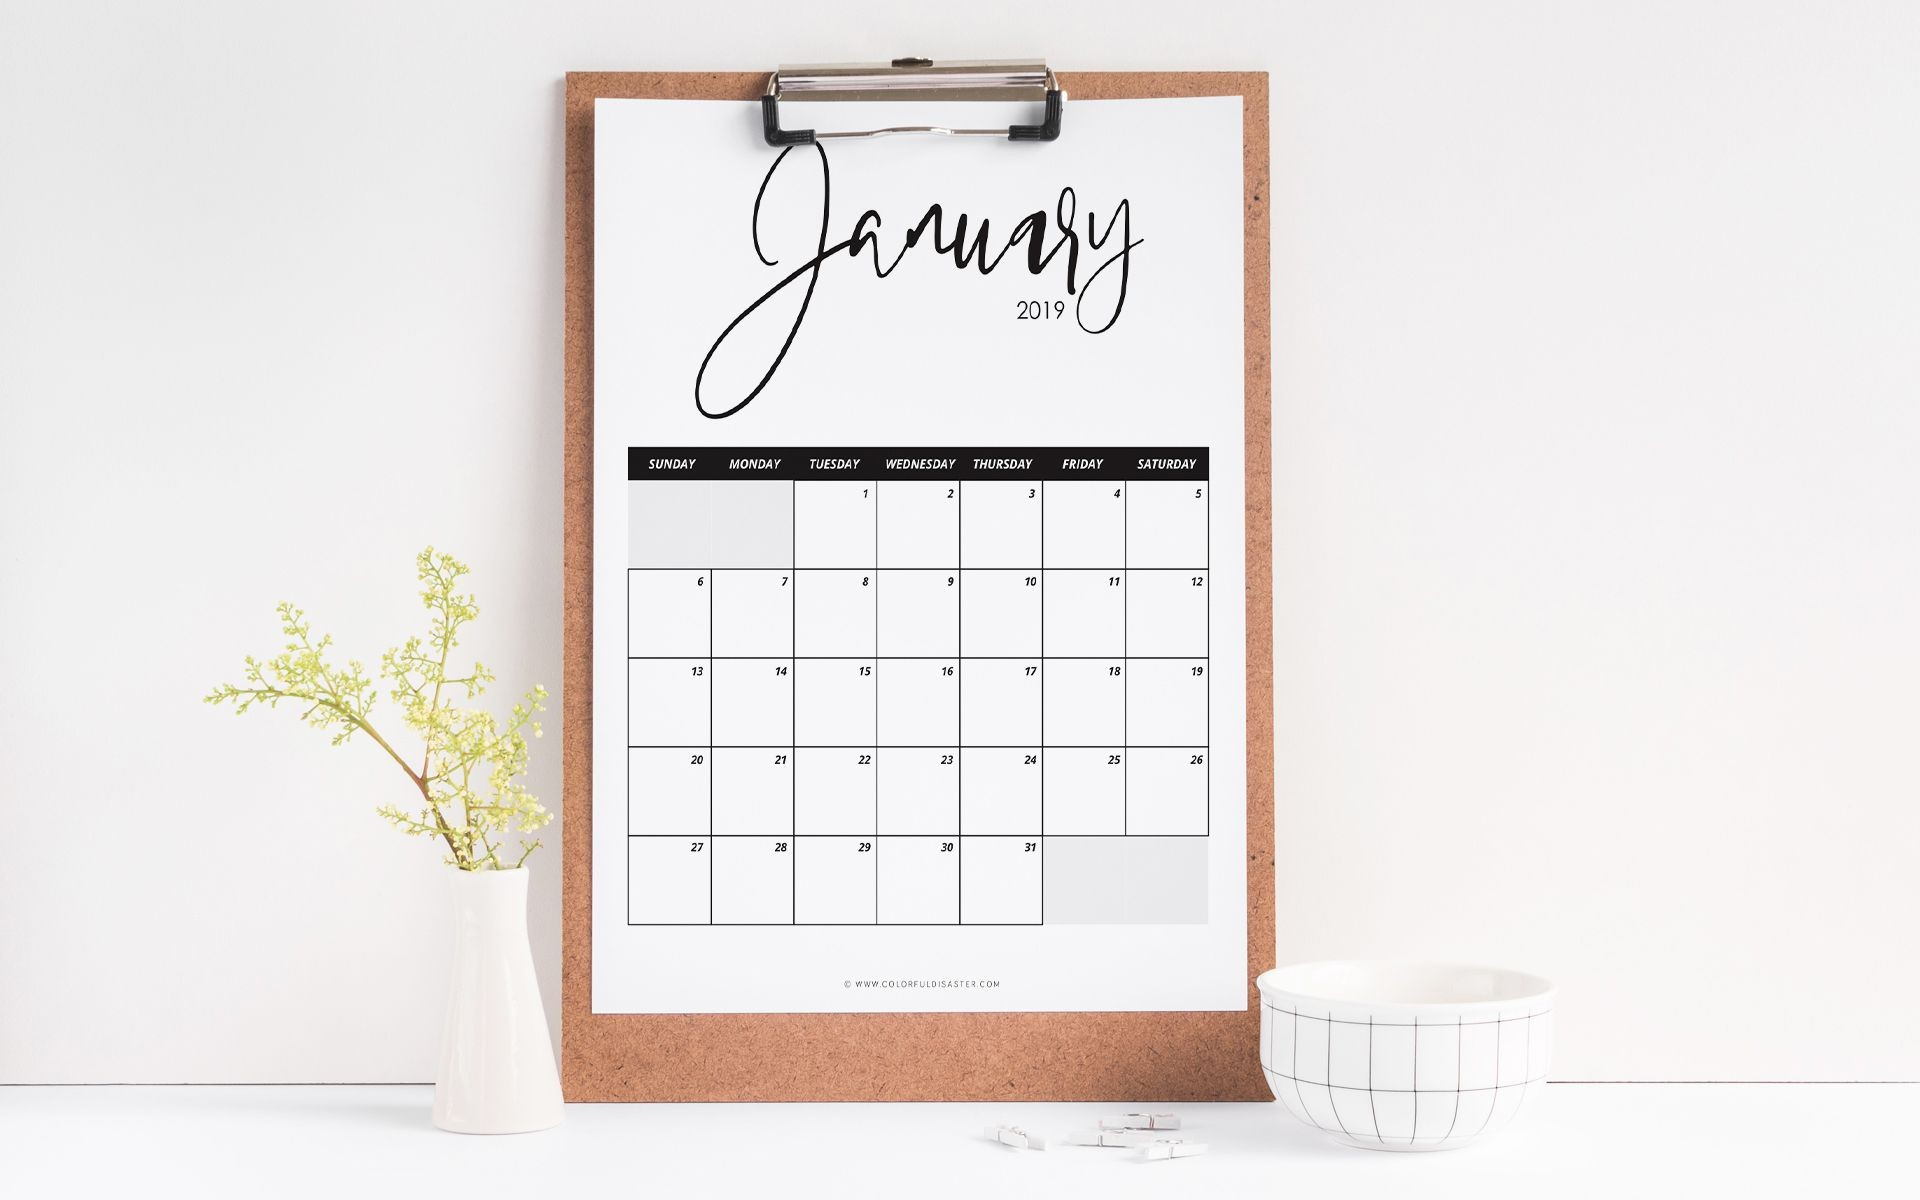 10 Stylish Free Printable Calendars for 2019